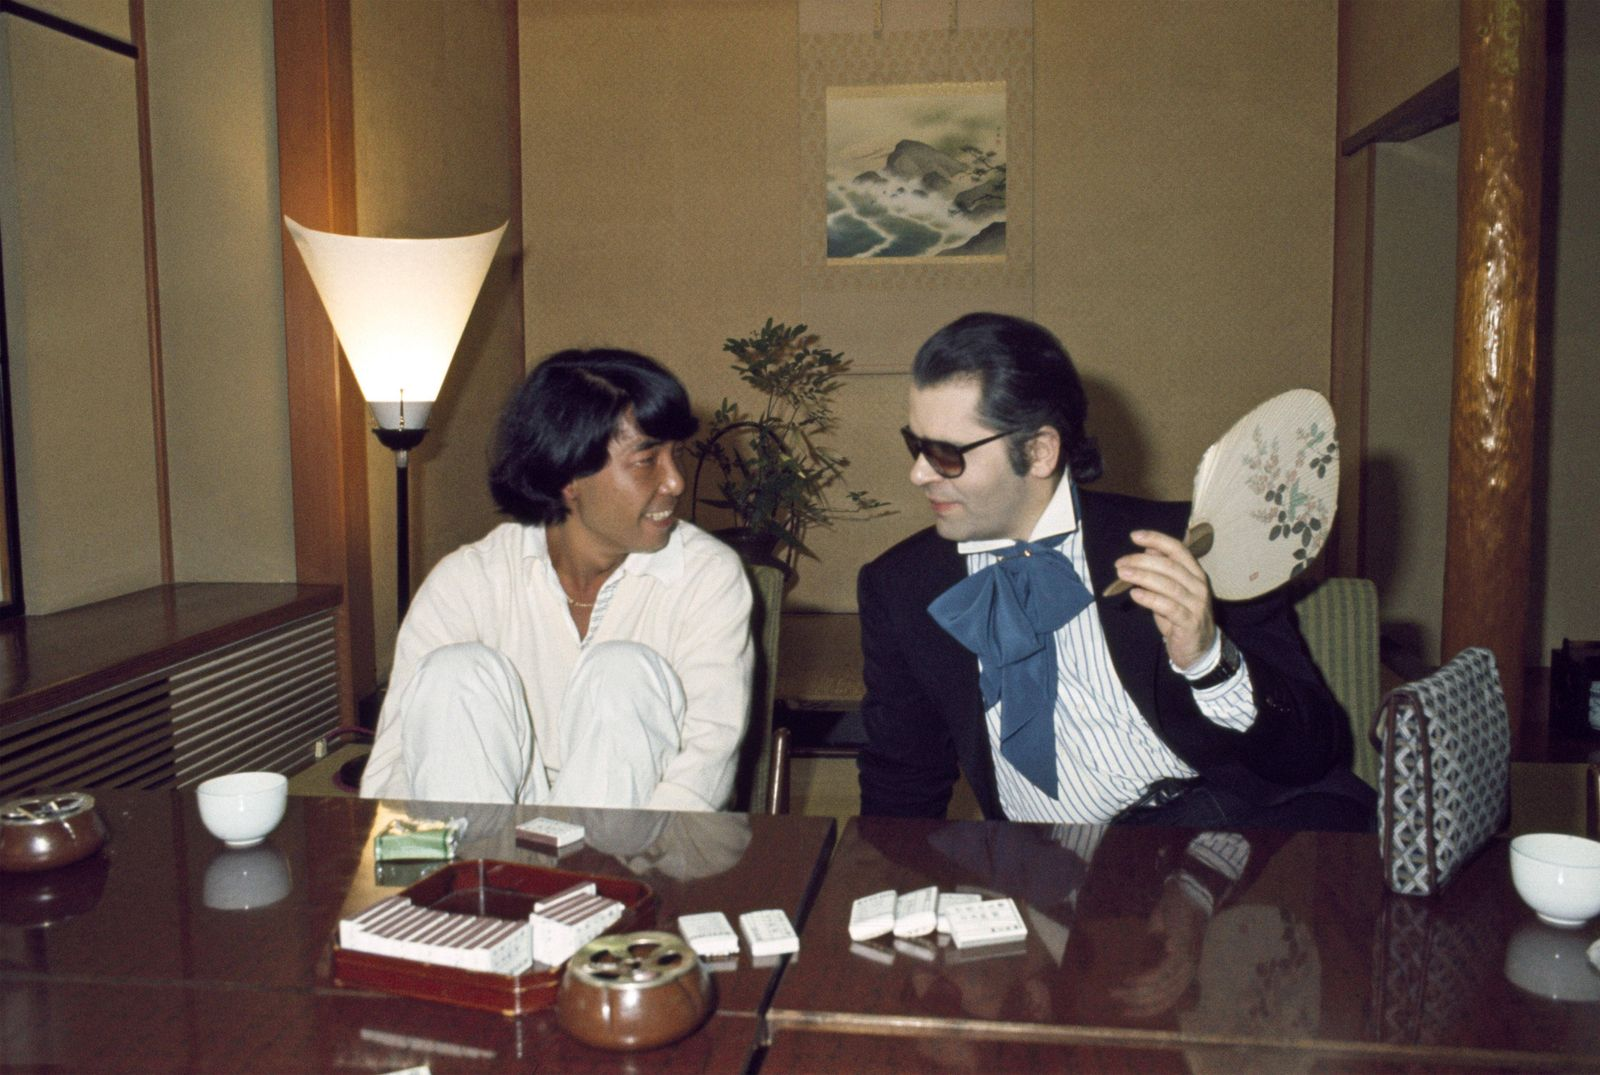 Karl Lagerfeld 1977 Fashion designer Karl Lagerfeld in a restaurant with Kenzo Takada in Japan in 1